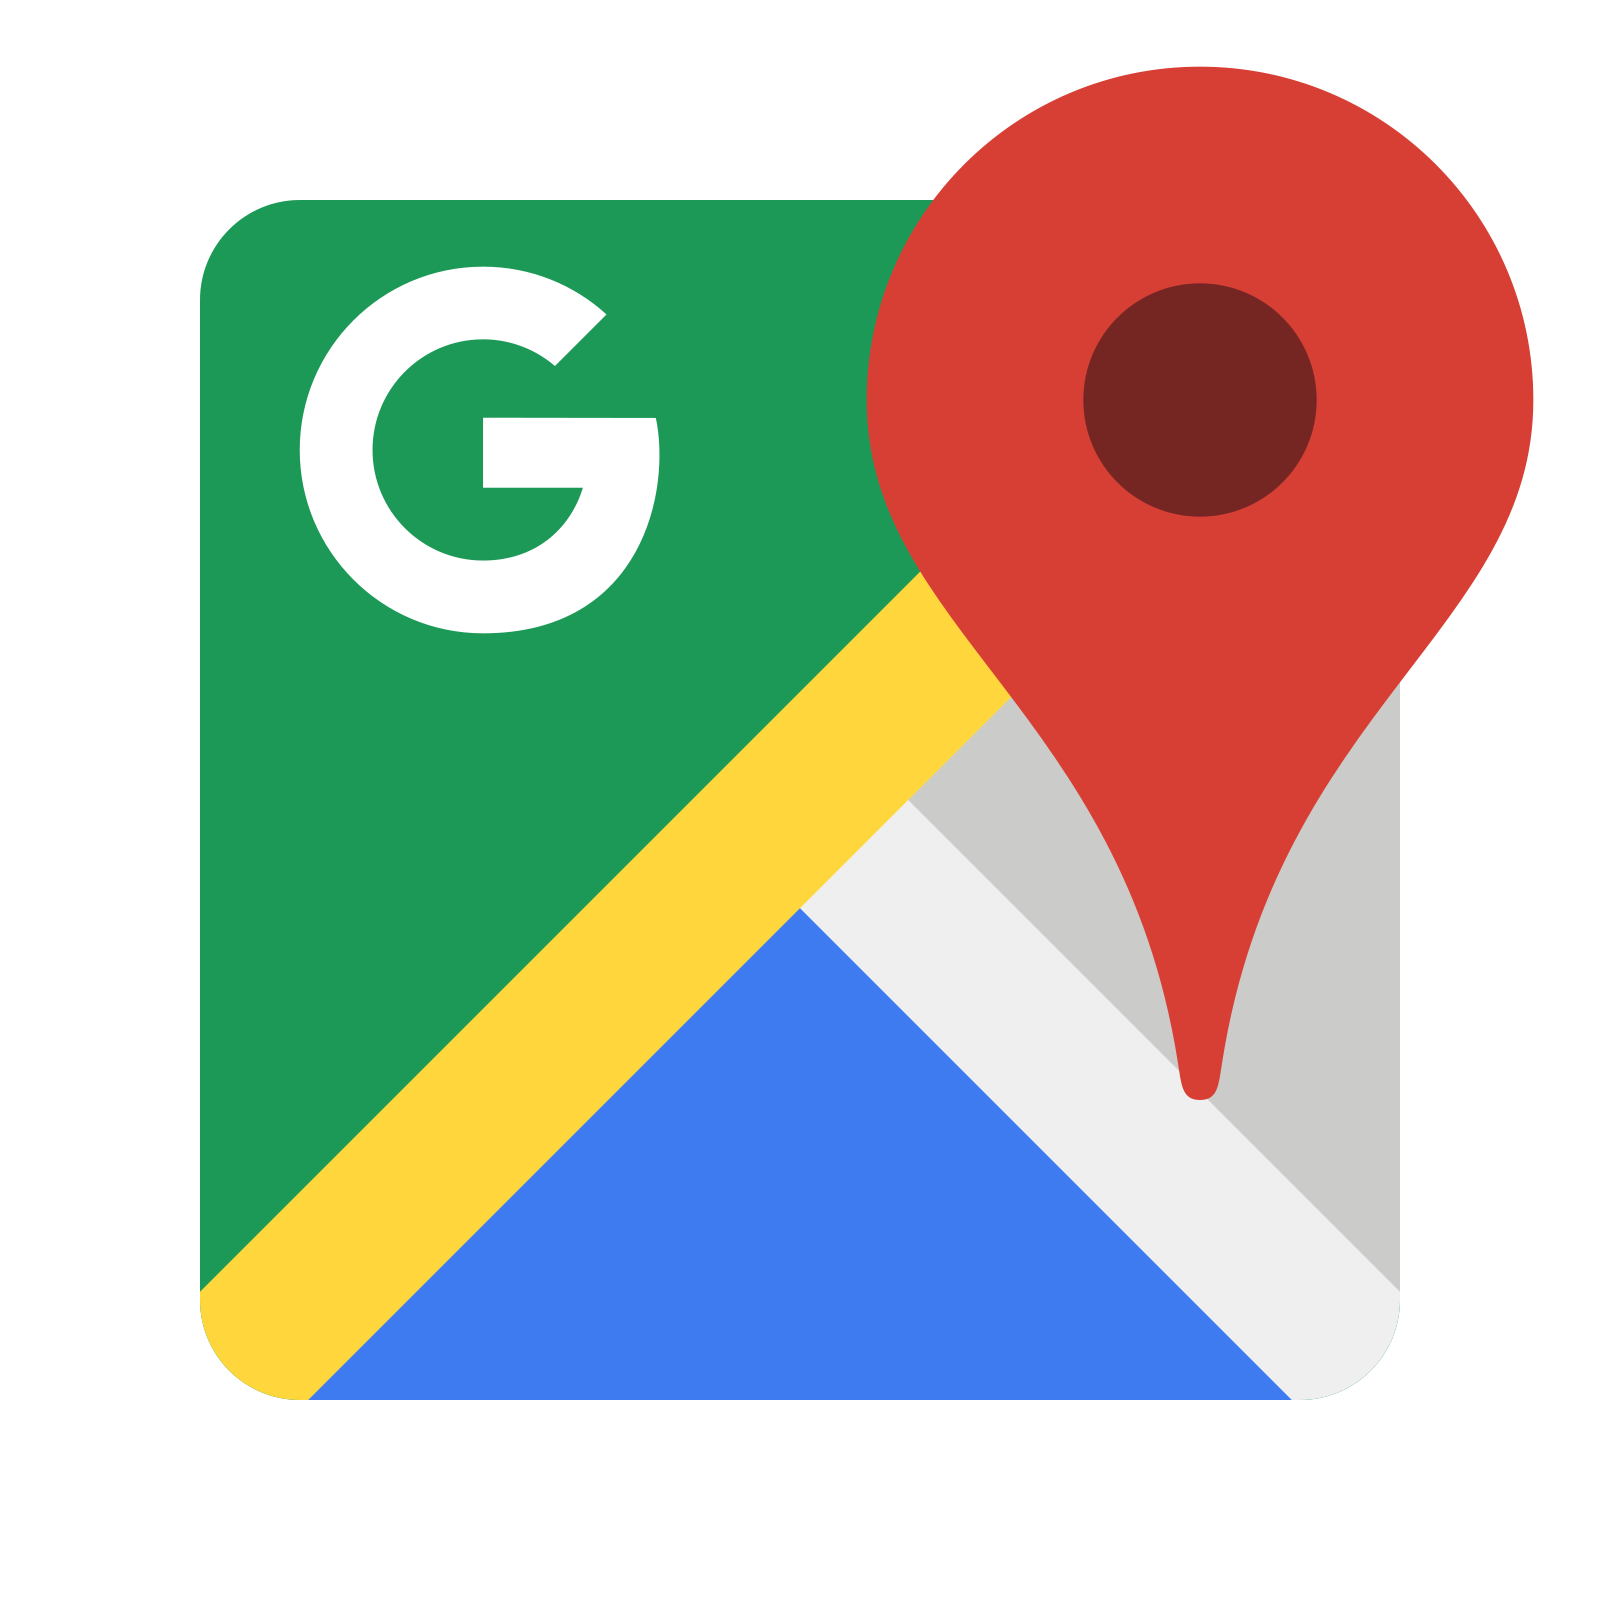 512x512 transparent logo google maps png #27173